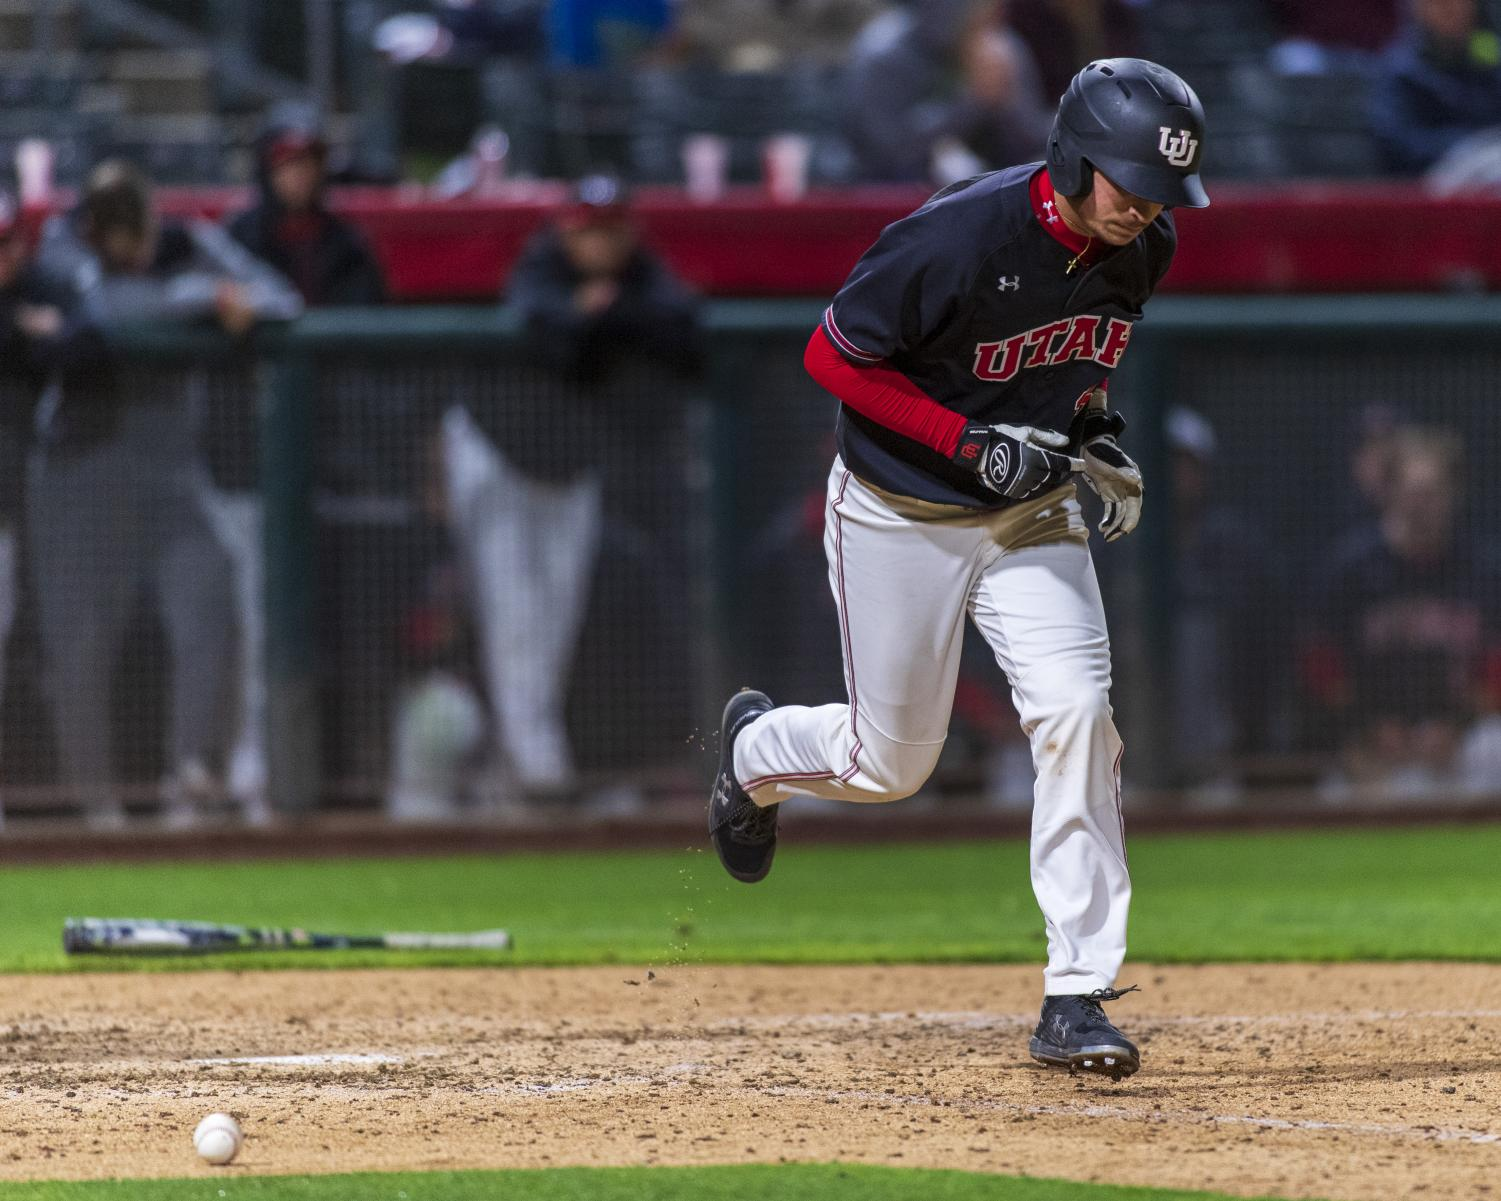 University of Utah sophomore infielder/outfielder Shea Kramer (15) walks to first during an NCAA Baseball game at the Smith's Ballpark in Salt Lake City on Thursday, April 11, 2019. (Photo by Kiffer Creveling | The Daily Utah Chronicle)